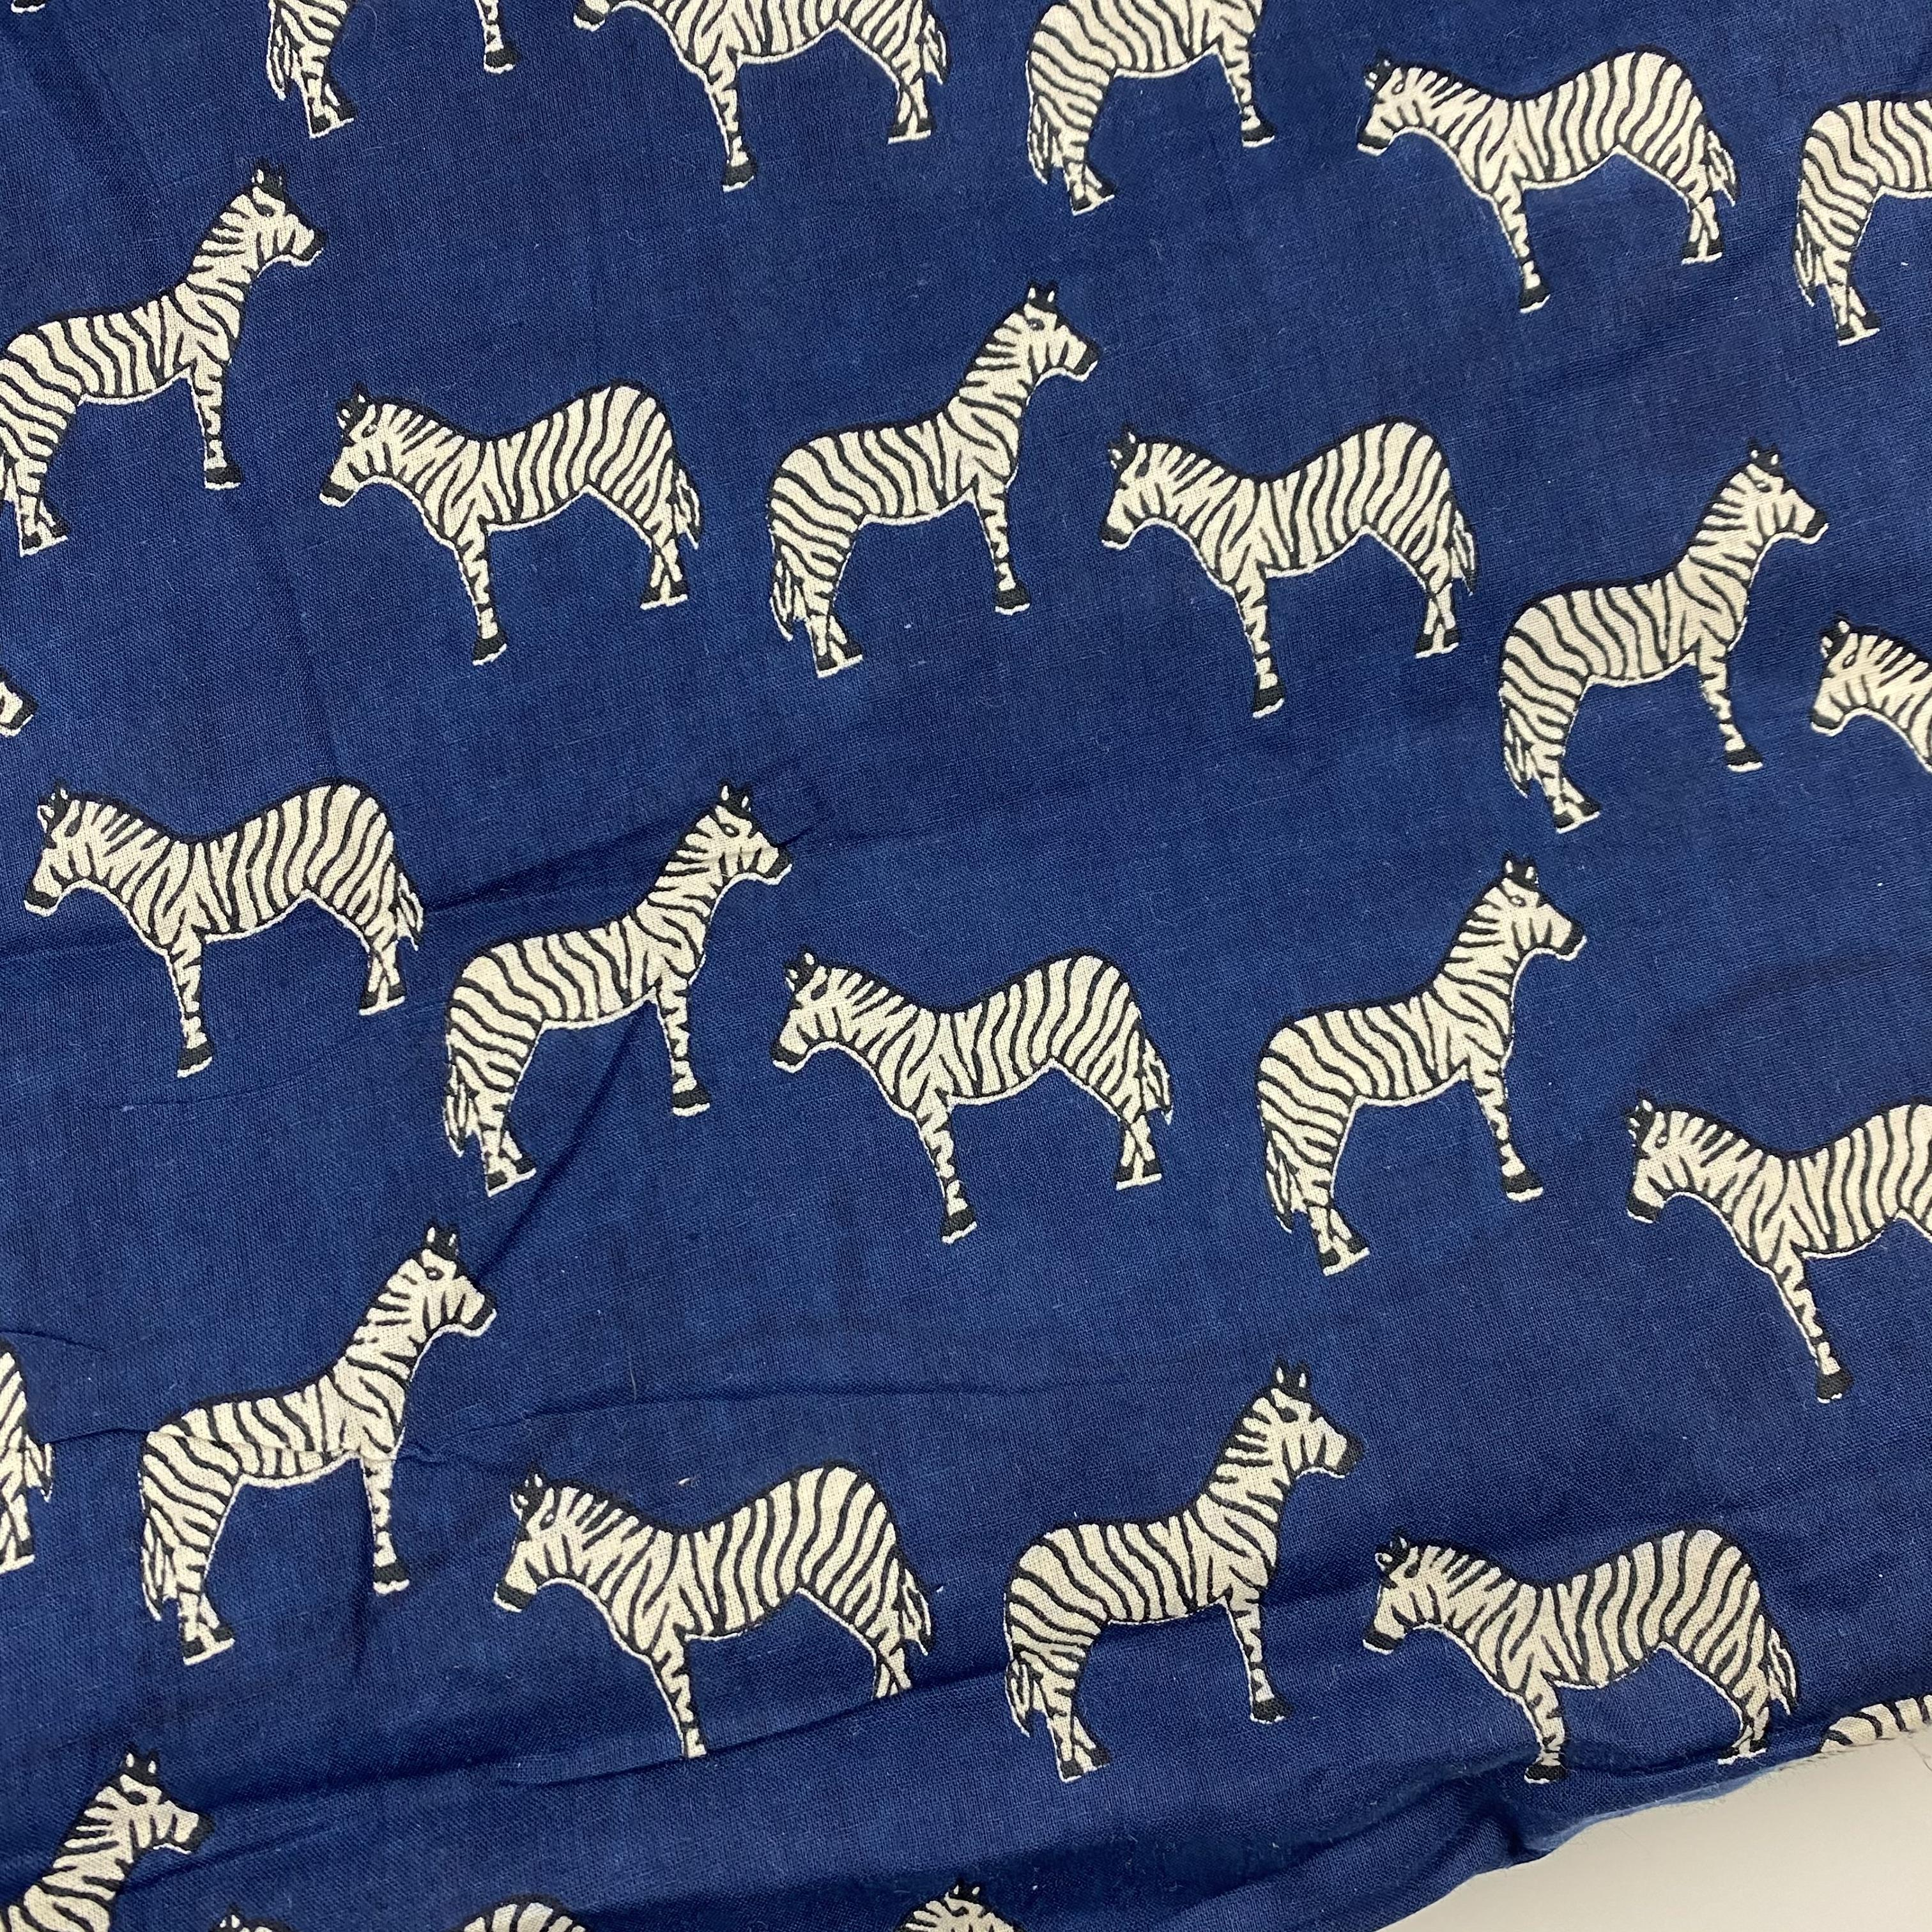 Navy cotton fabric with white zebra motif for pre order pajama shorts